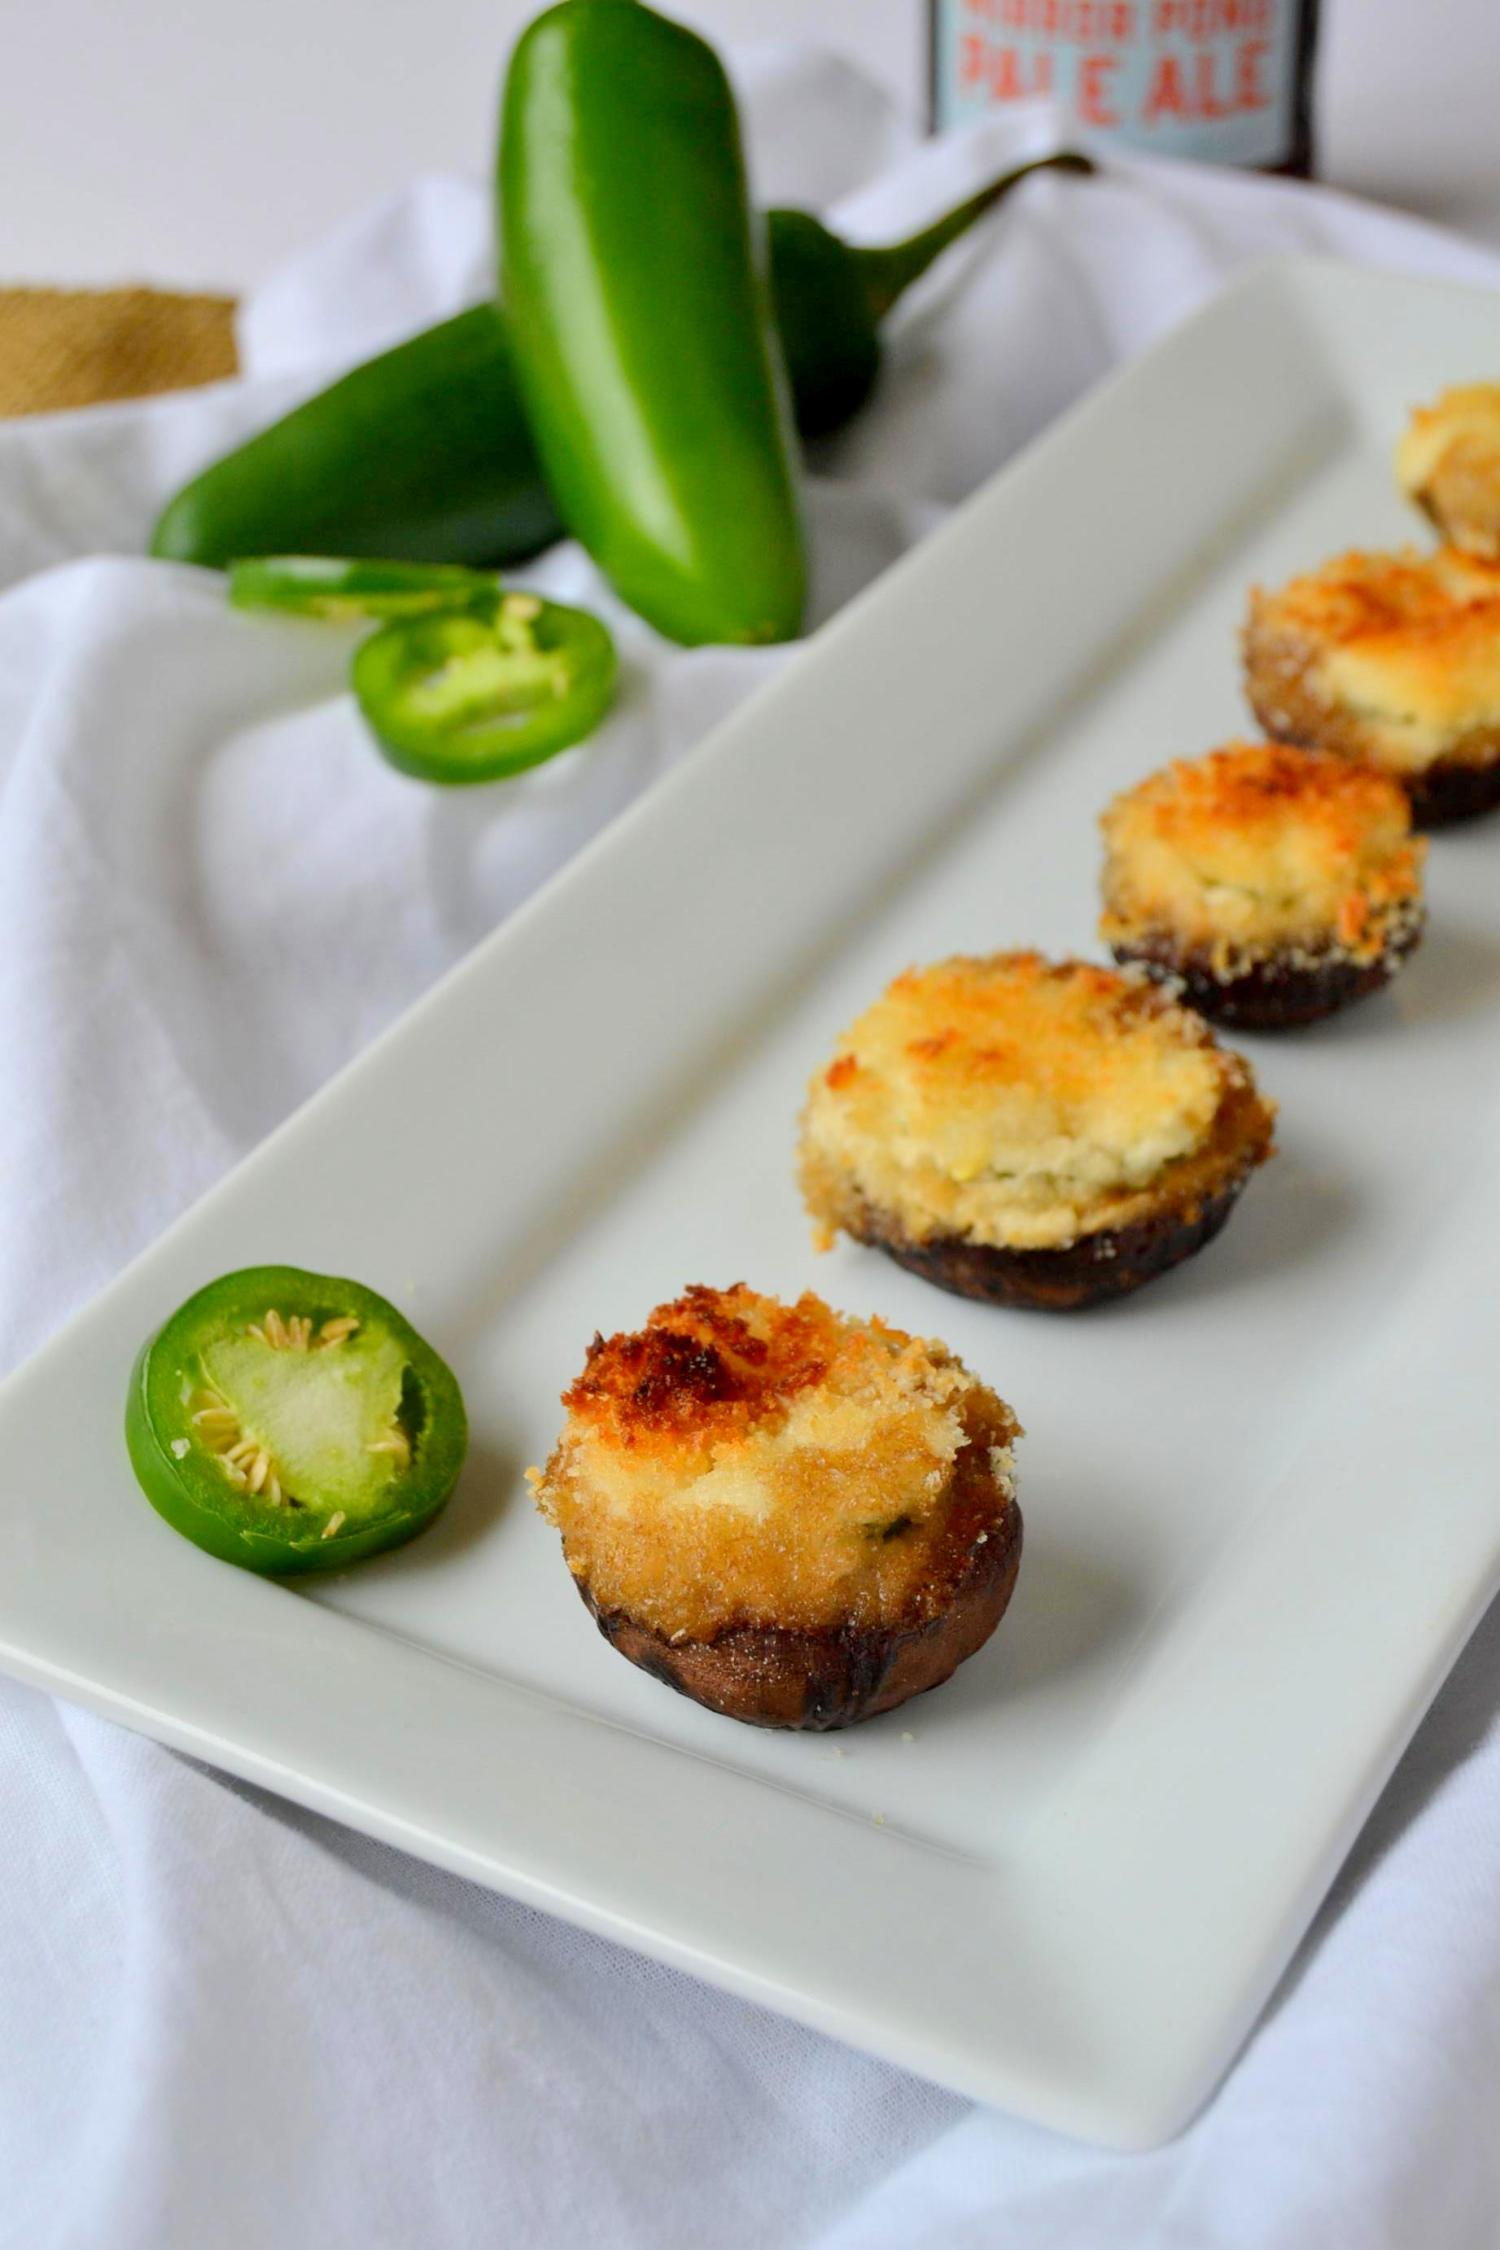 Jalapeno Popper Stuffed Mushrooms